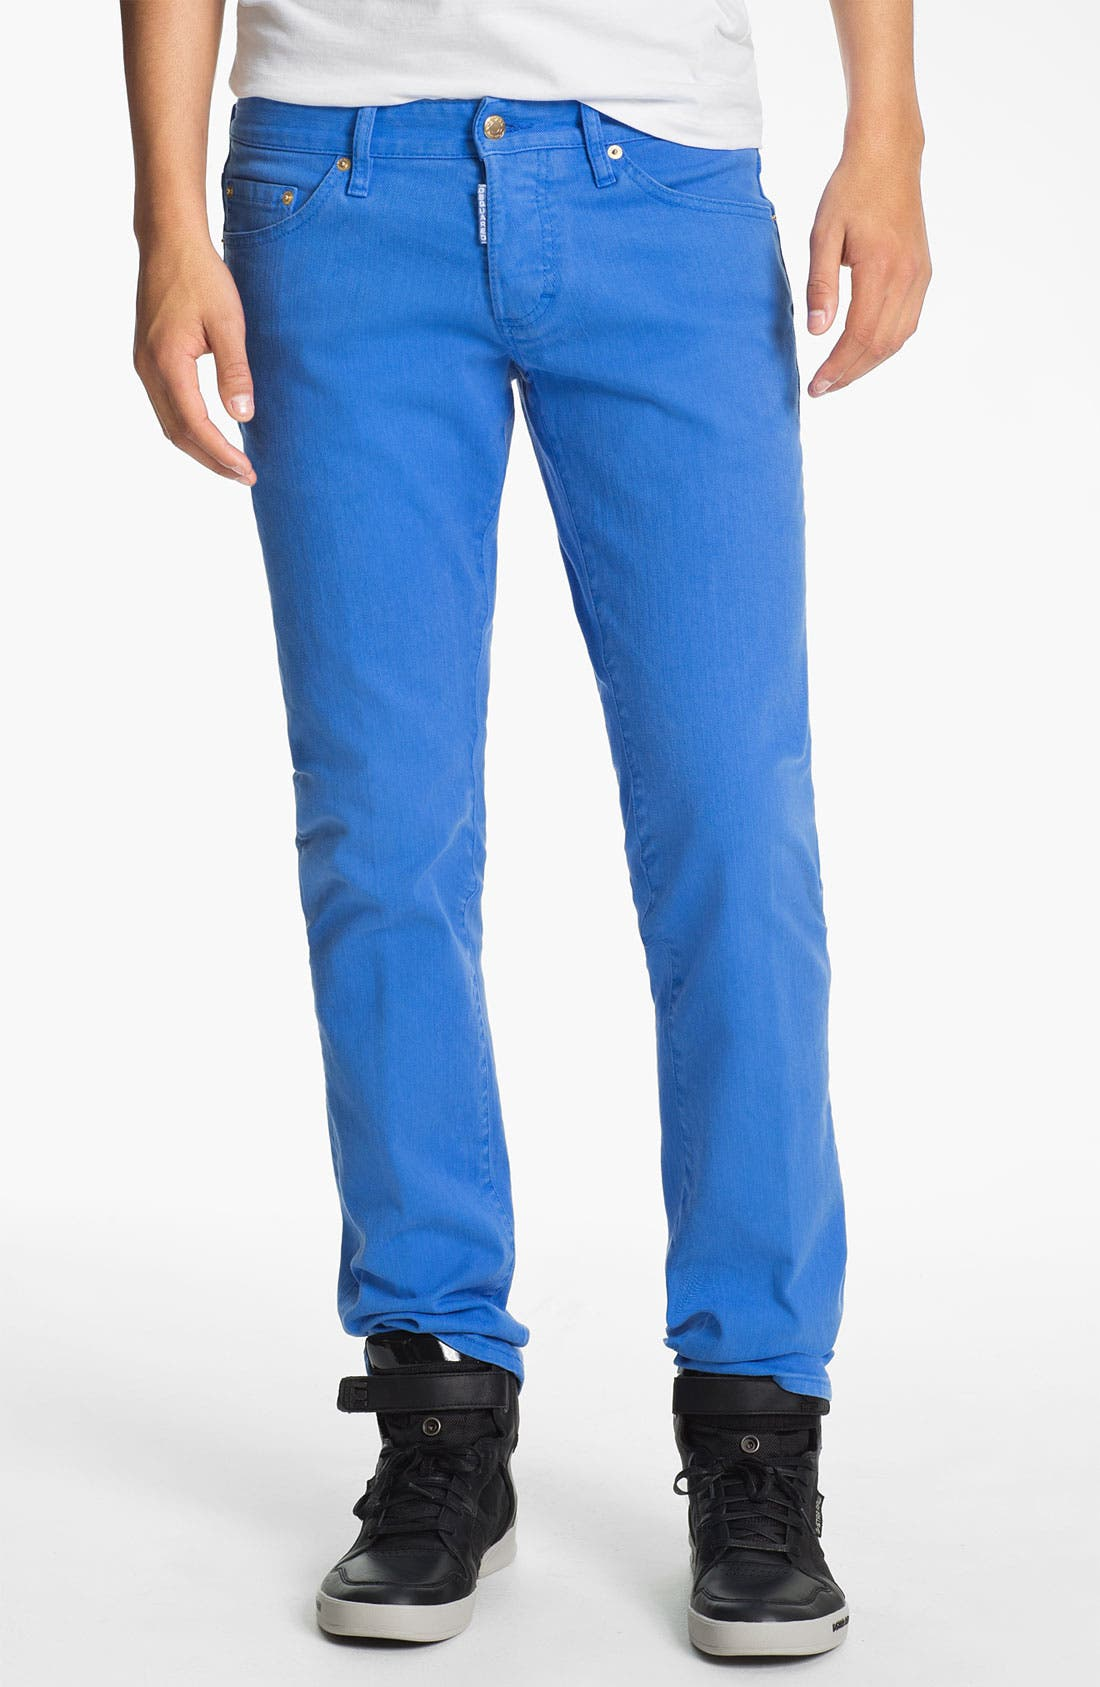 Alternate Image 1 Selected - Dsquared2 Garment Dyed Slim Fit Jeans